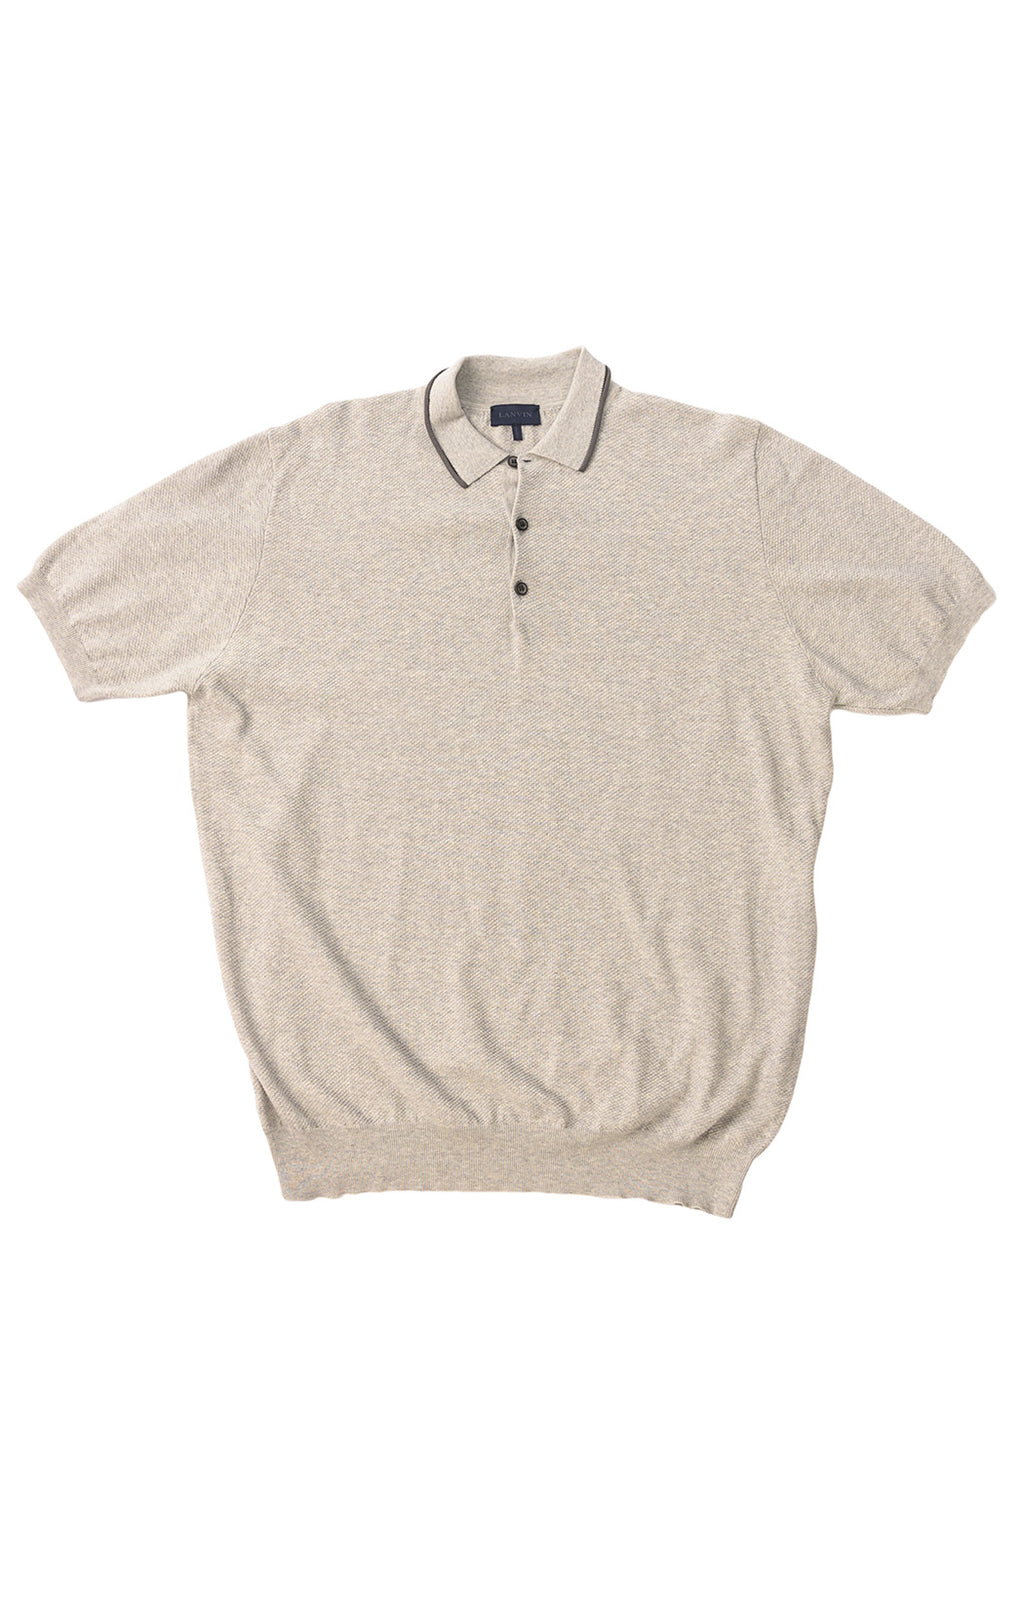 Front view of LANVIN Shirt Size: 3XL